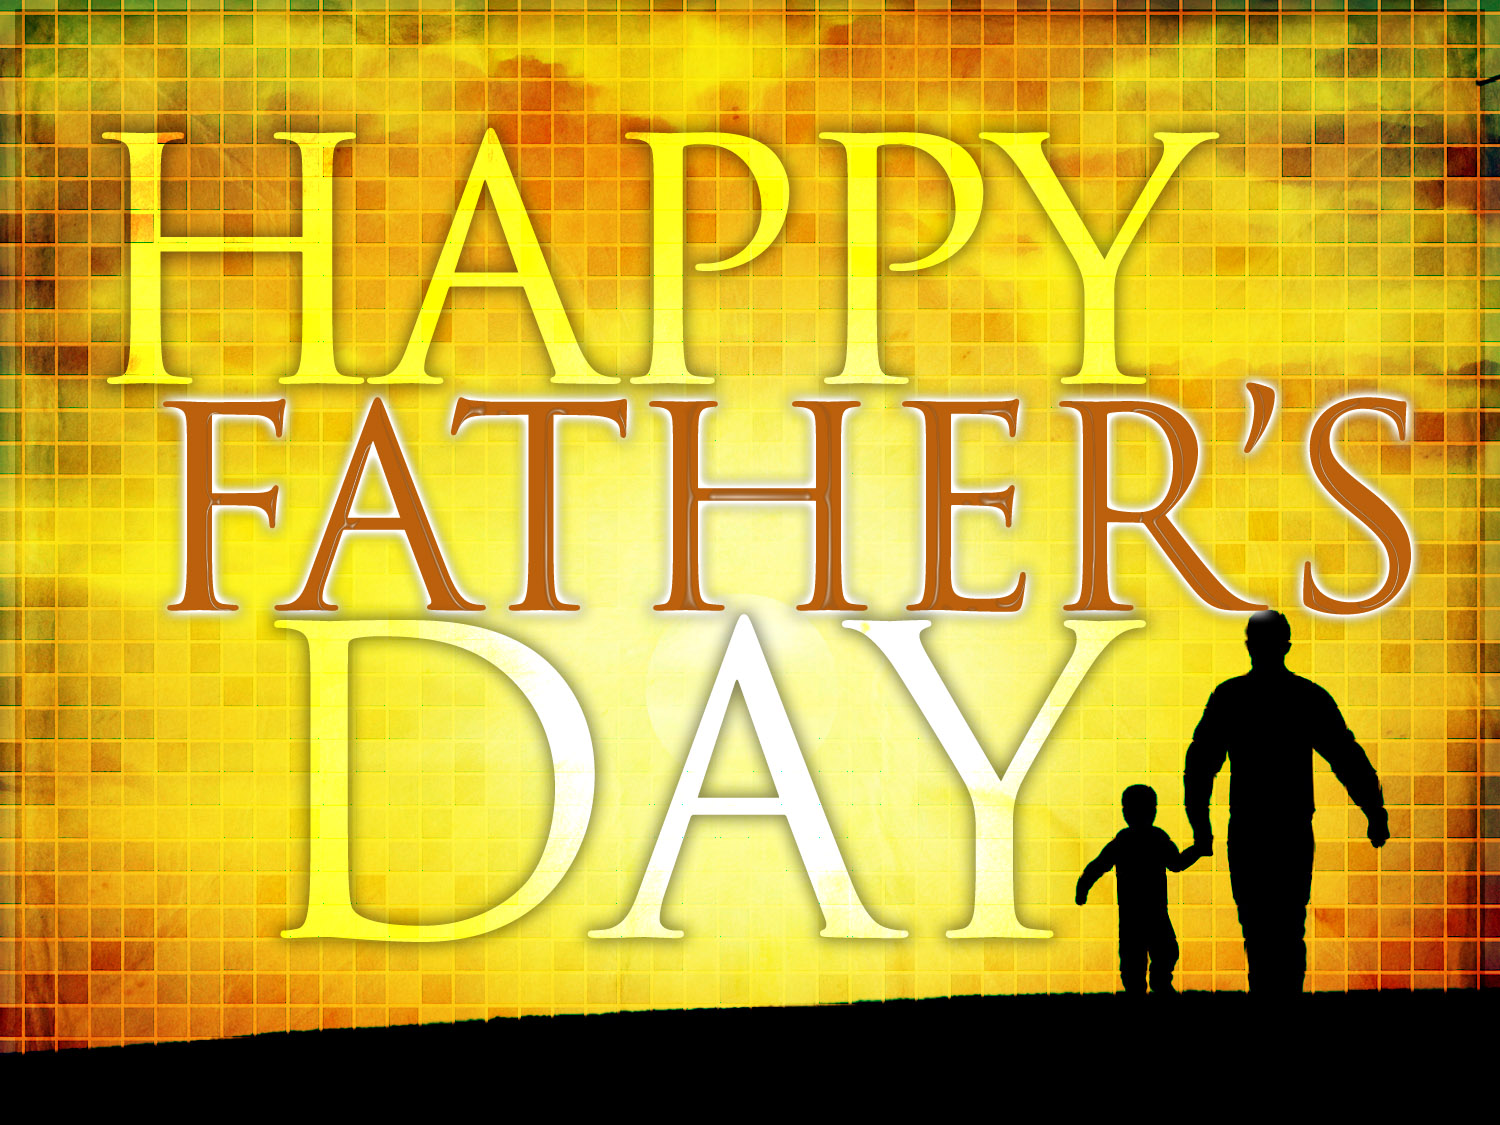 celebrity wall: happy father's day wallpapers desktop/loving/greetings